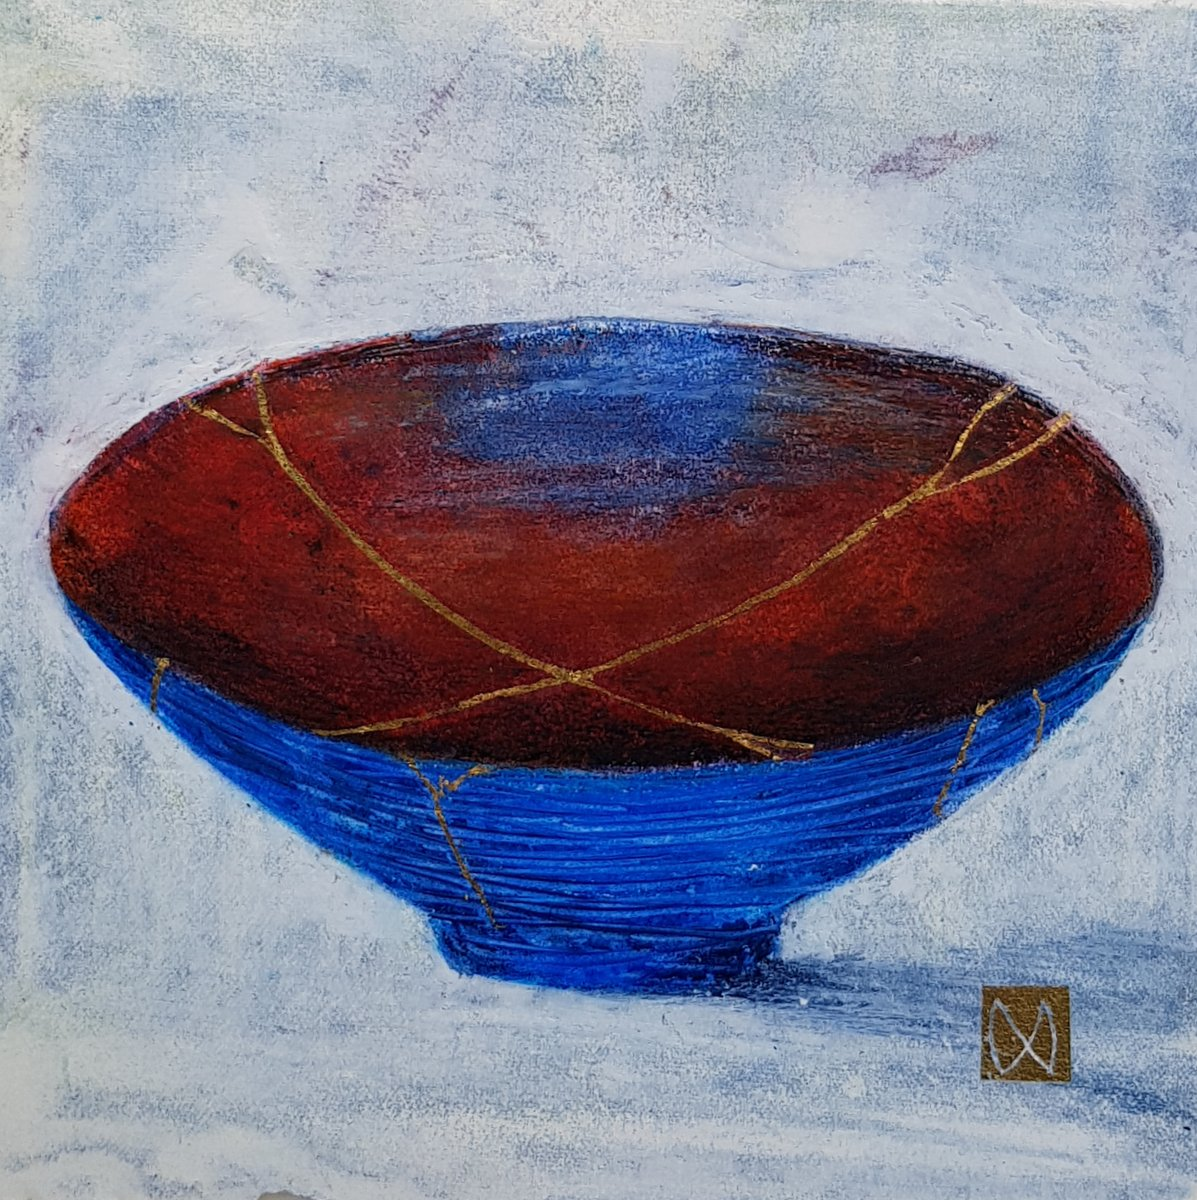 painting of Japanese kintsugi Summer tea bowl with gold by Irish artist cobalt blue sienna